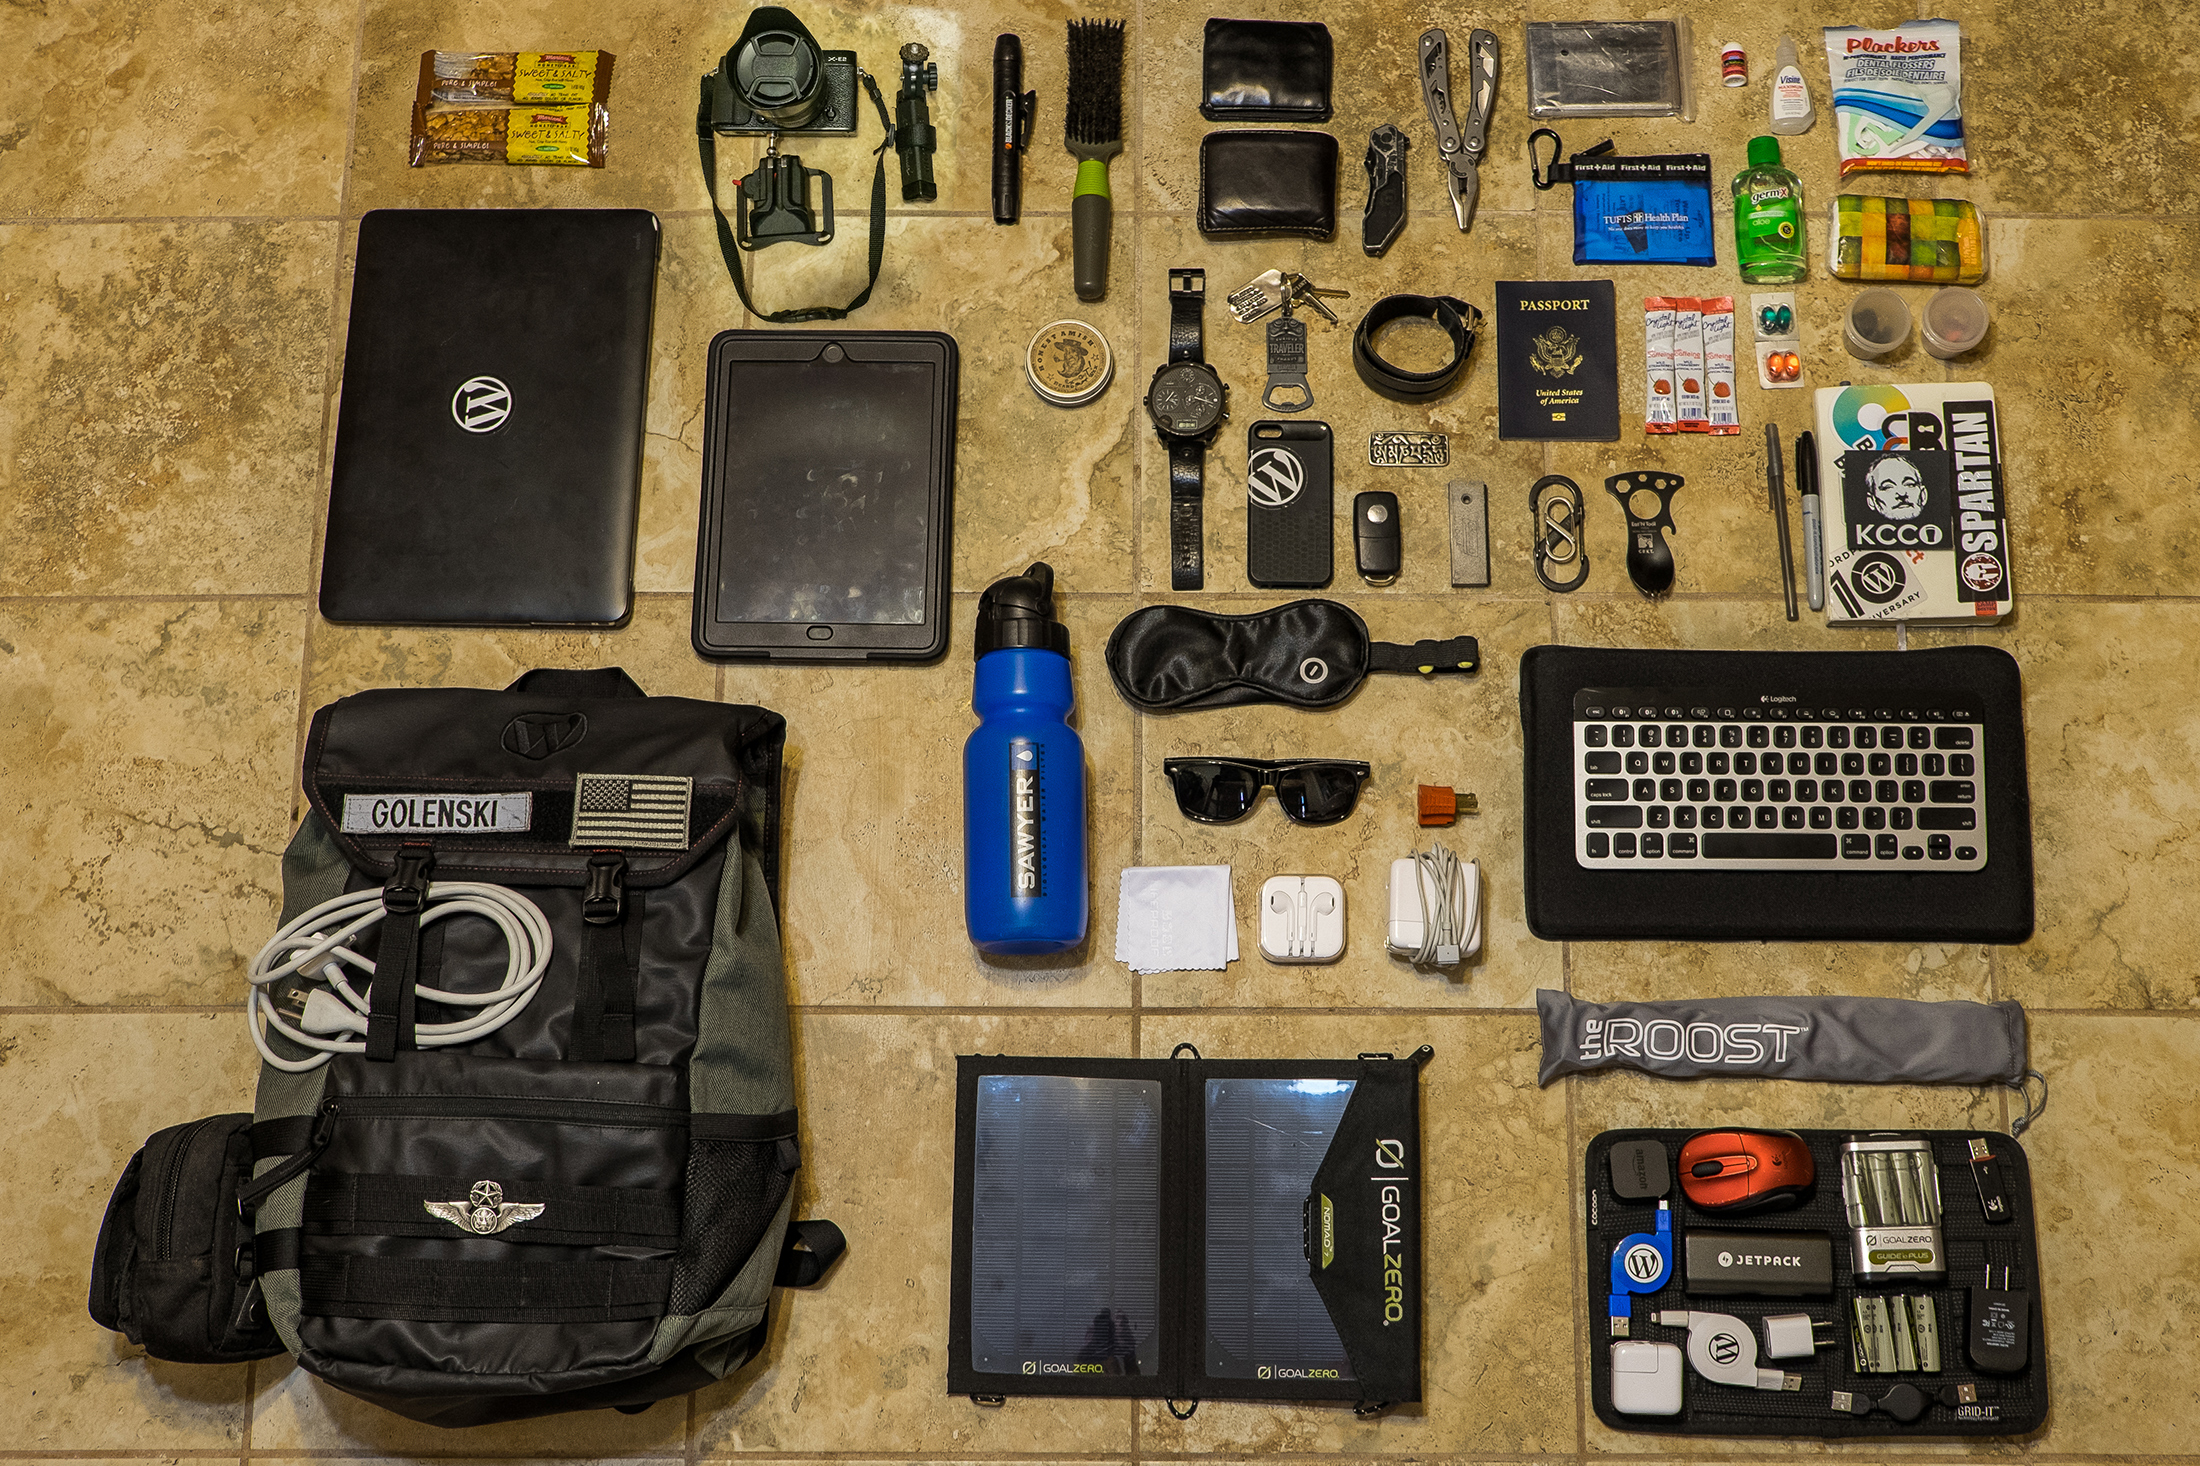 Jeff Golenski - Everyday Gear Bag